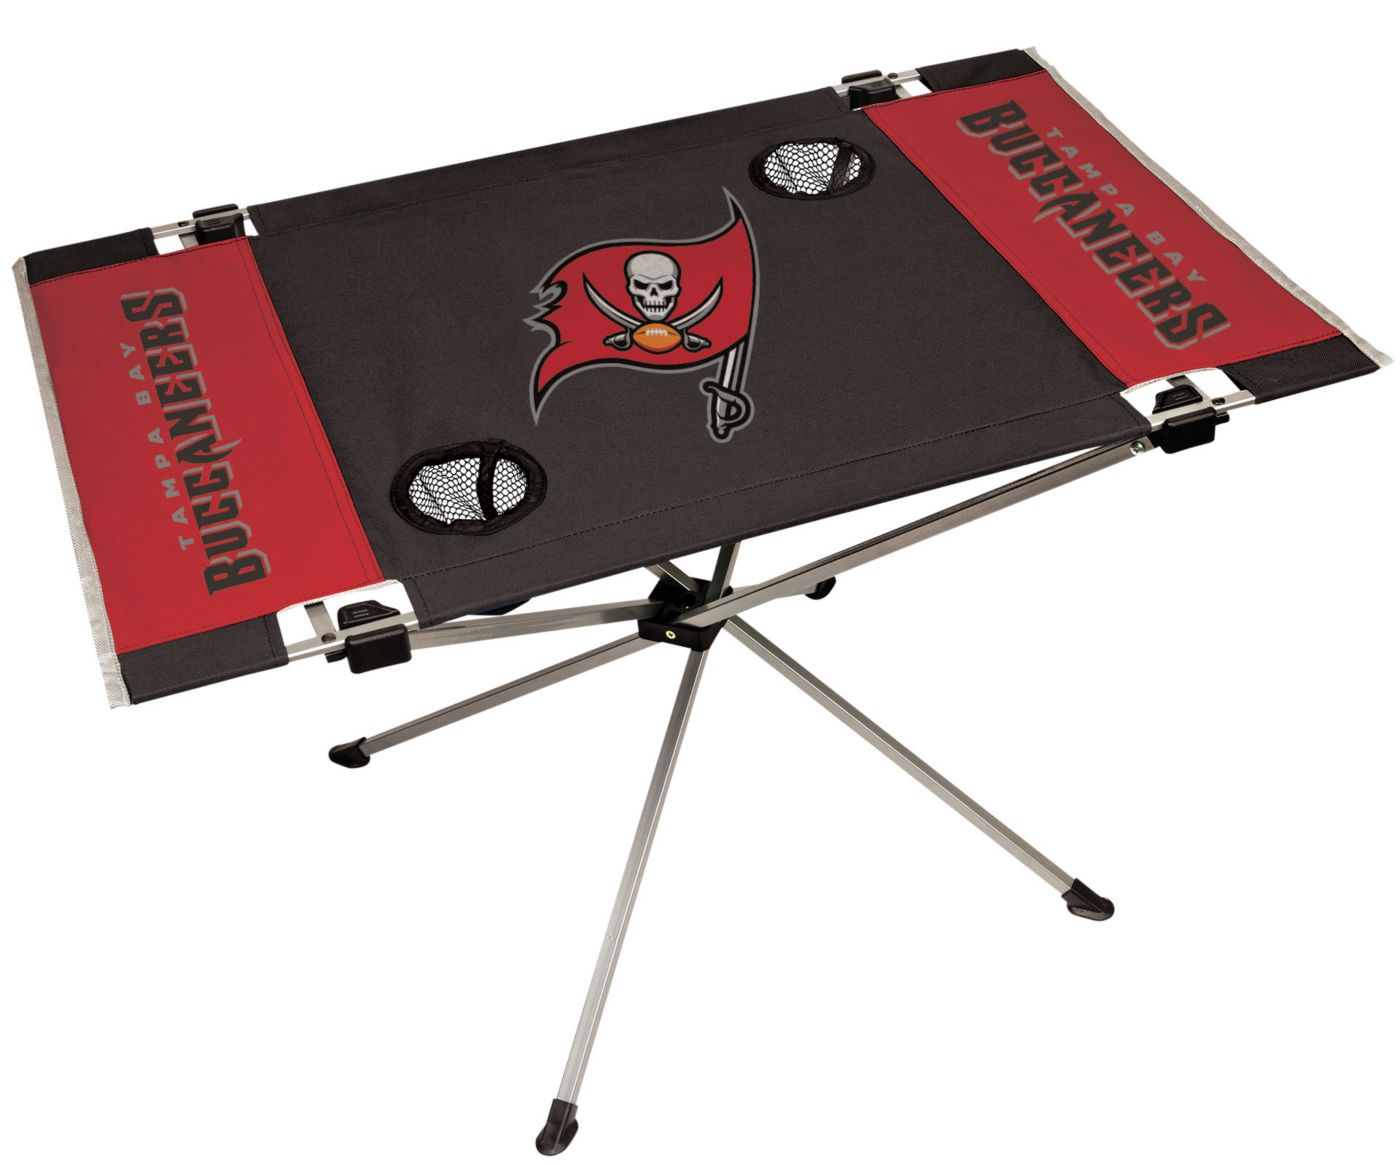 Rawlings Tampa Bay Buccaneers Endzone Table